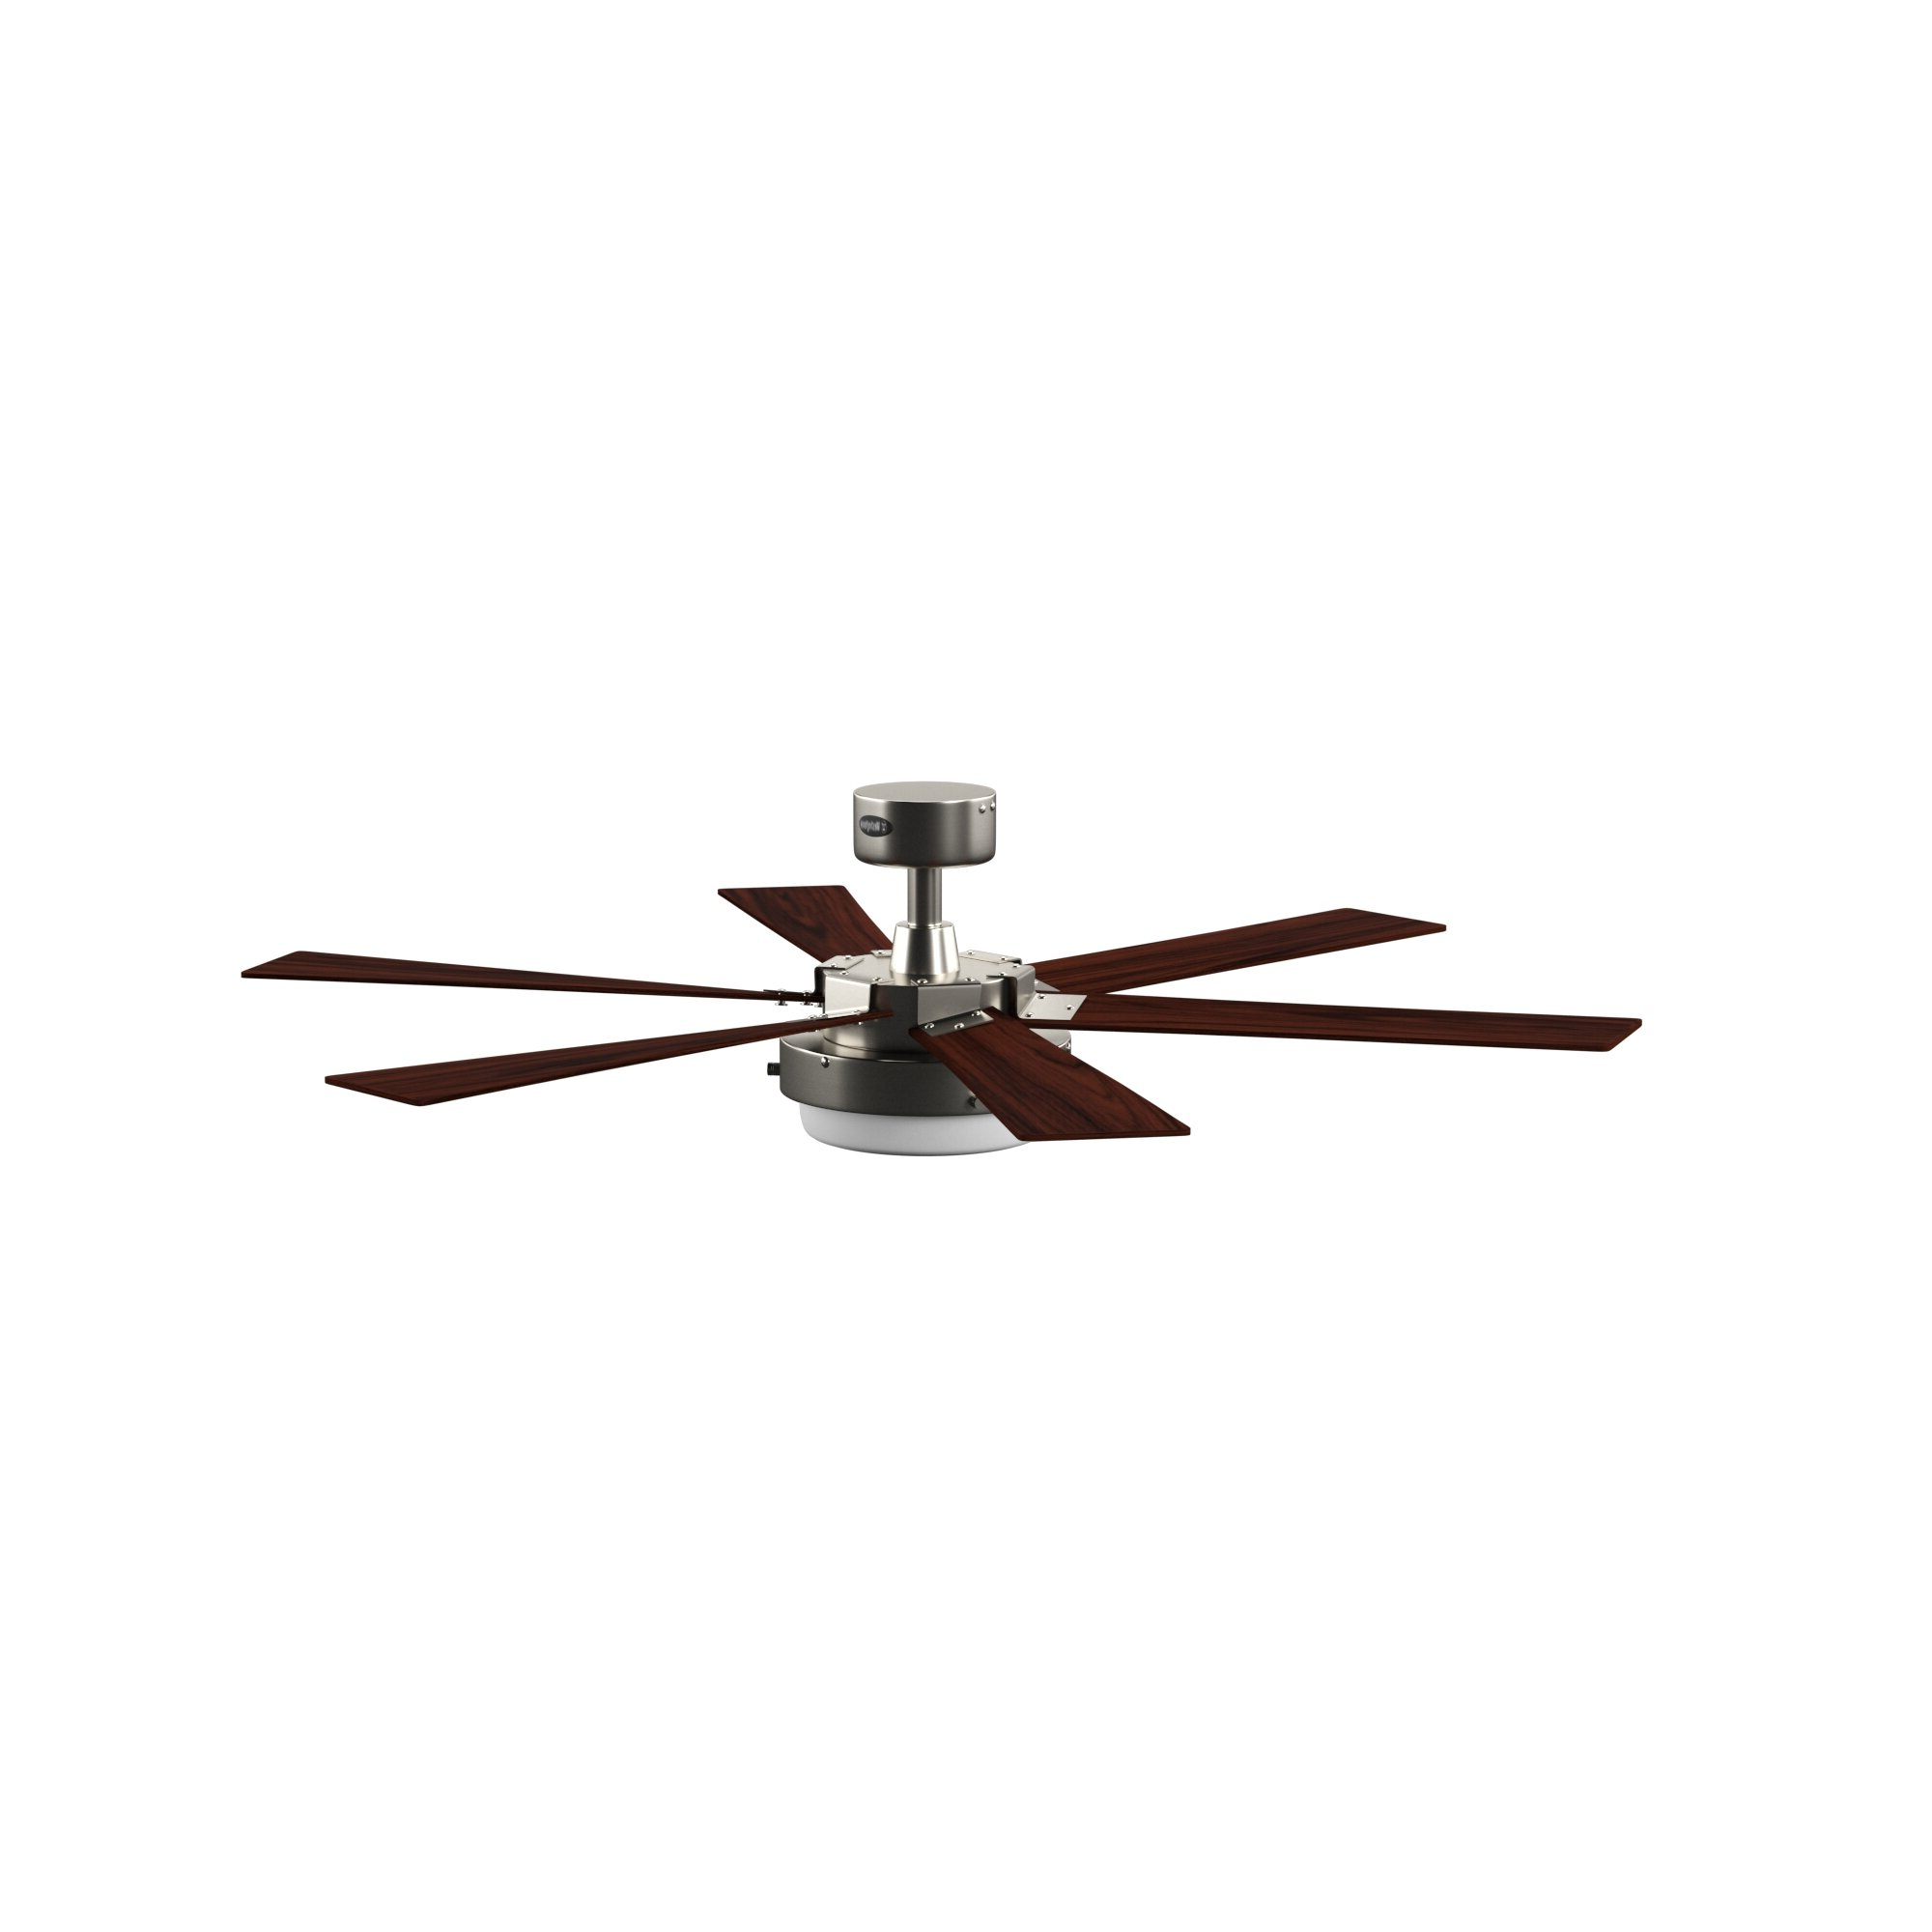 2020 Modern Extremely Large Room Ceiling Fans (View 19 of 20)